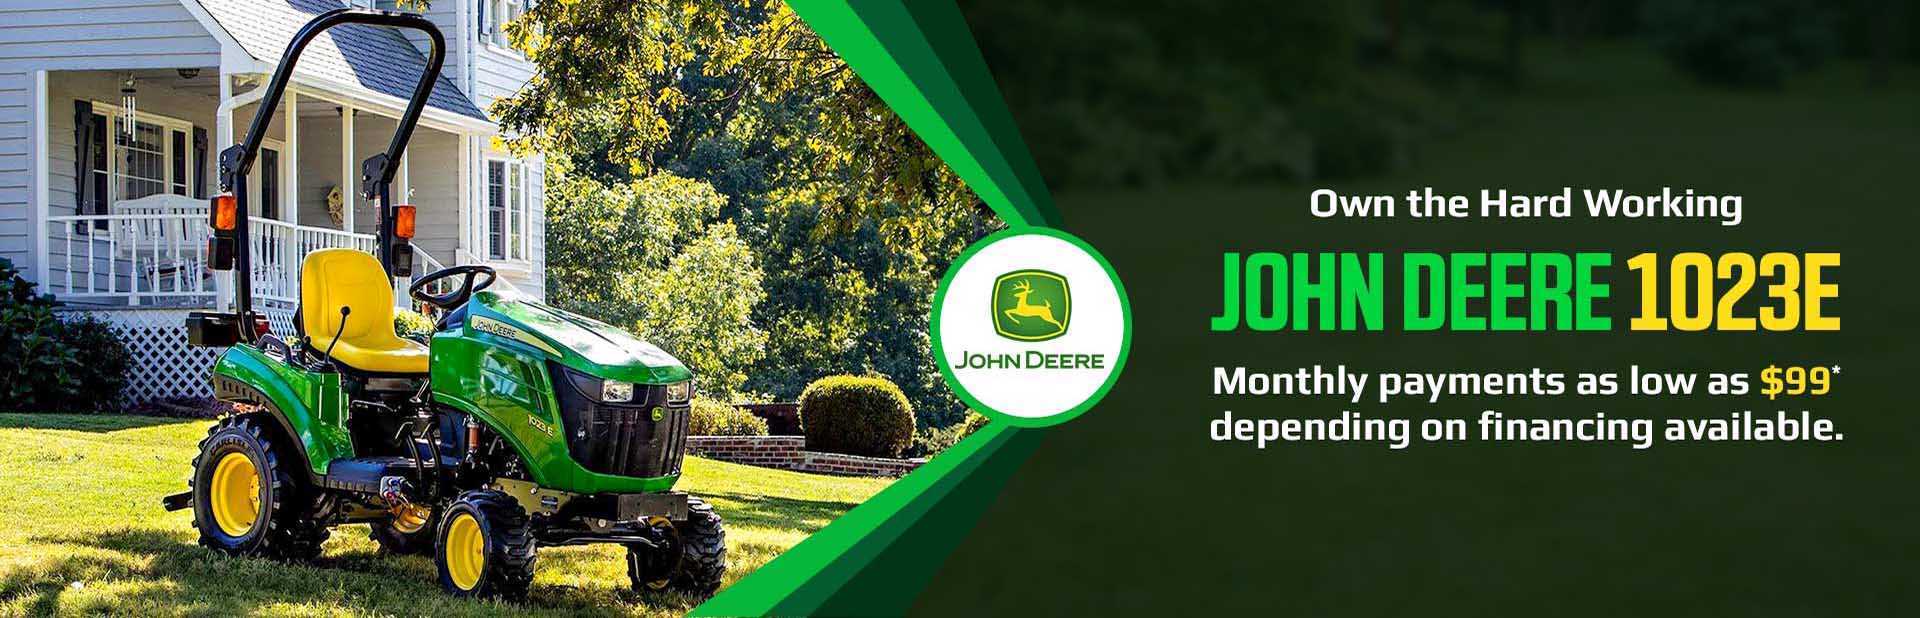 Own the hard working John Deere 1023E! Get monthly payments as low as $99* depending on financing available.